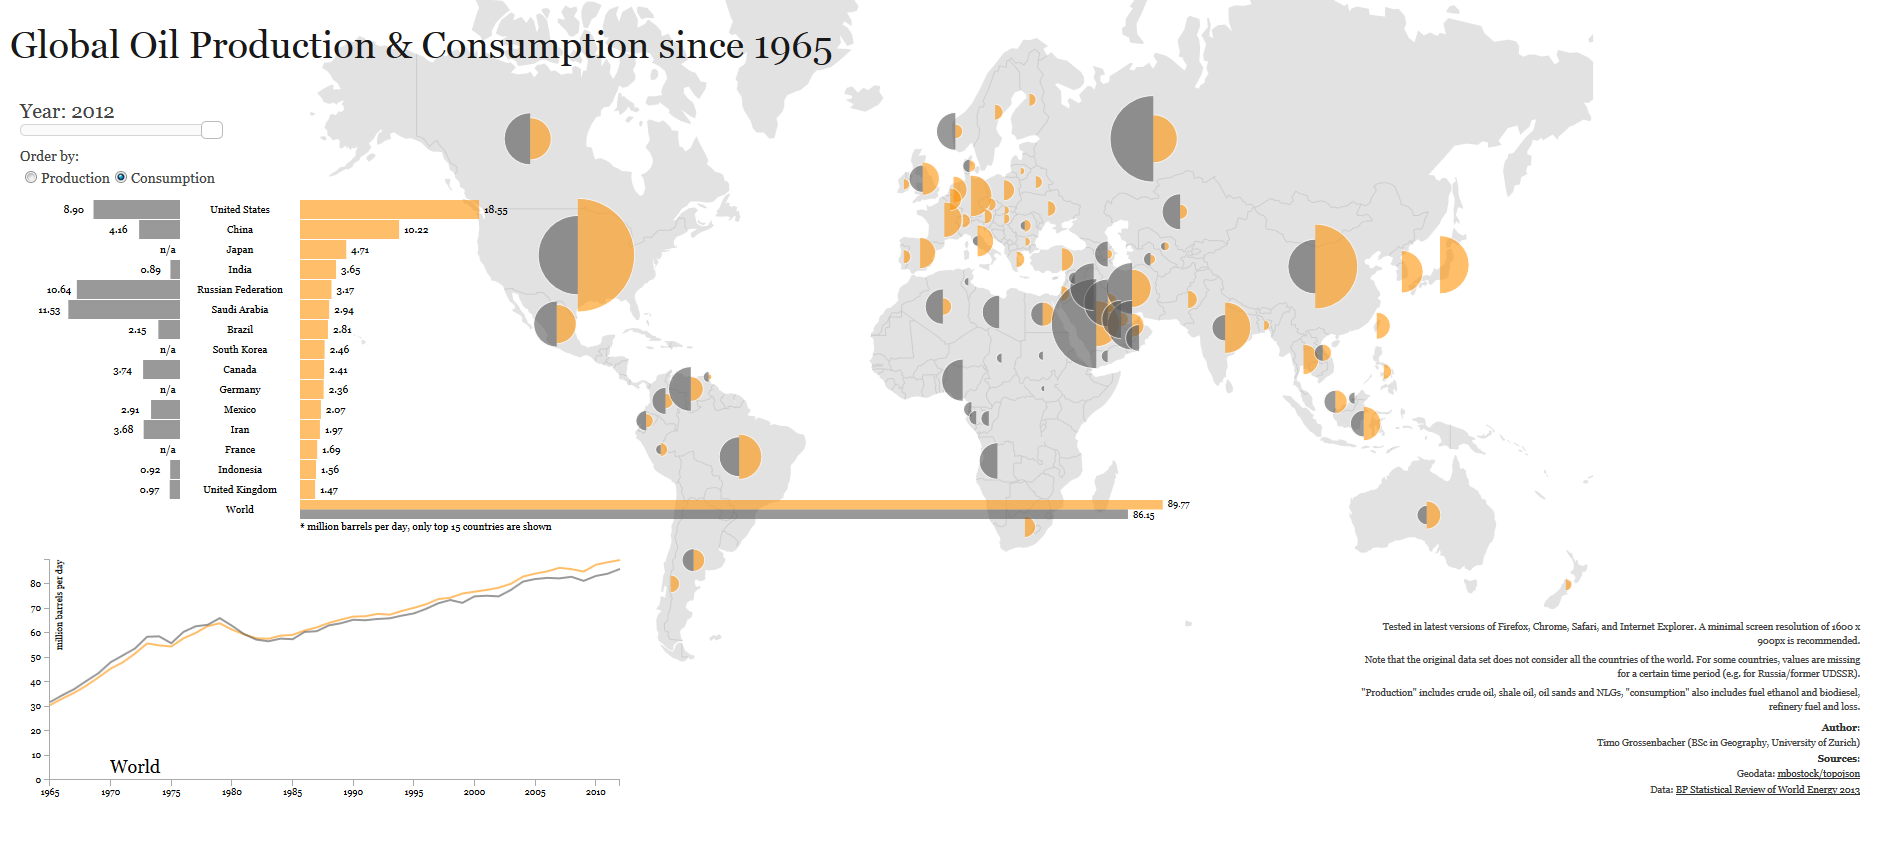 oil production and consumption since 1965